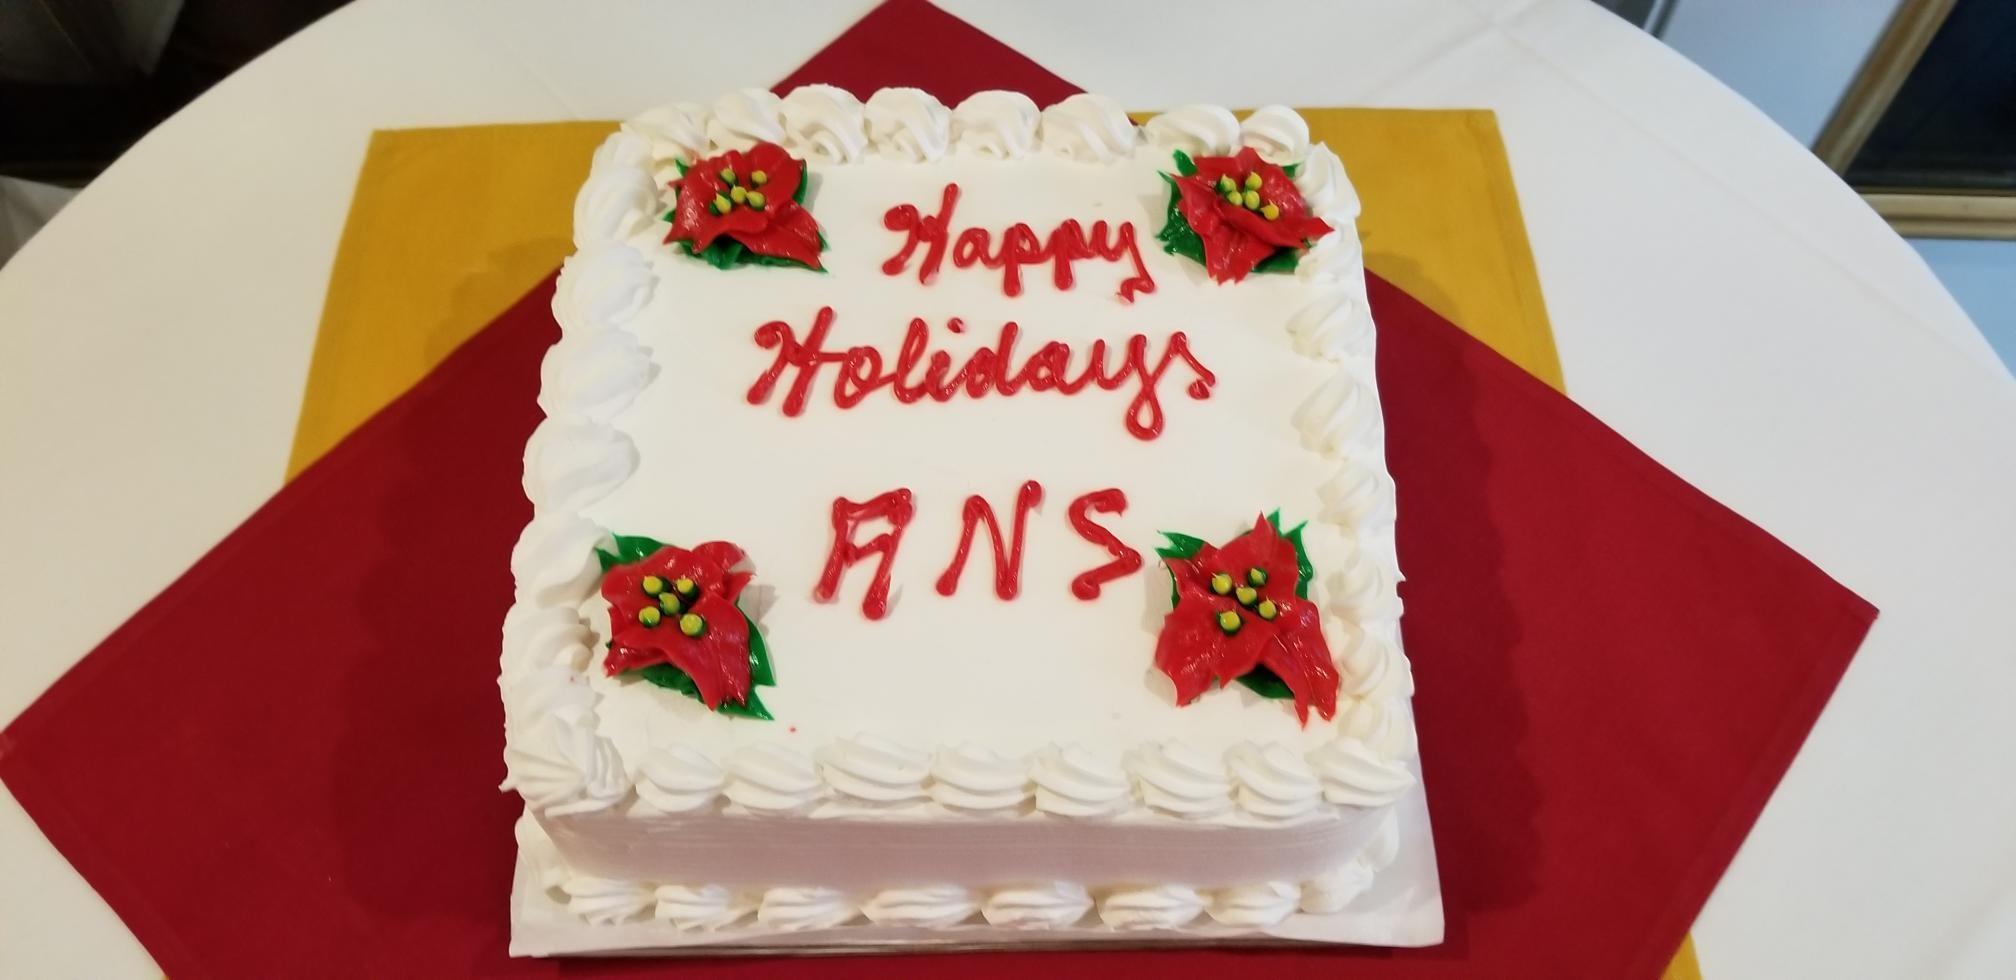 Holiday 2018 cake